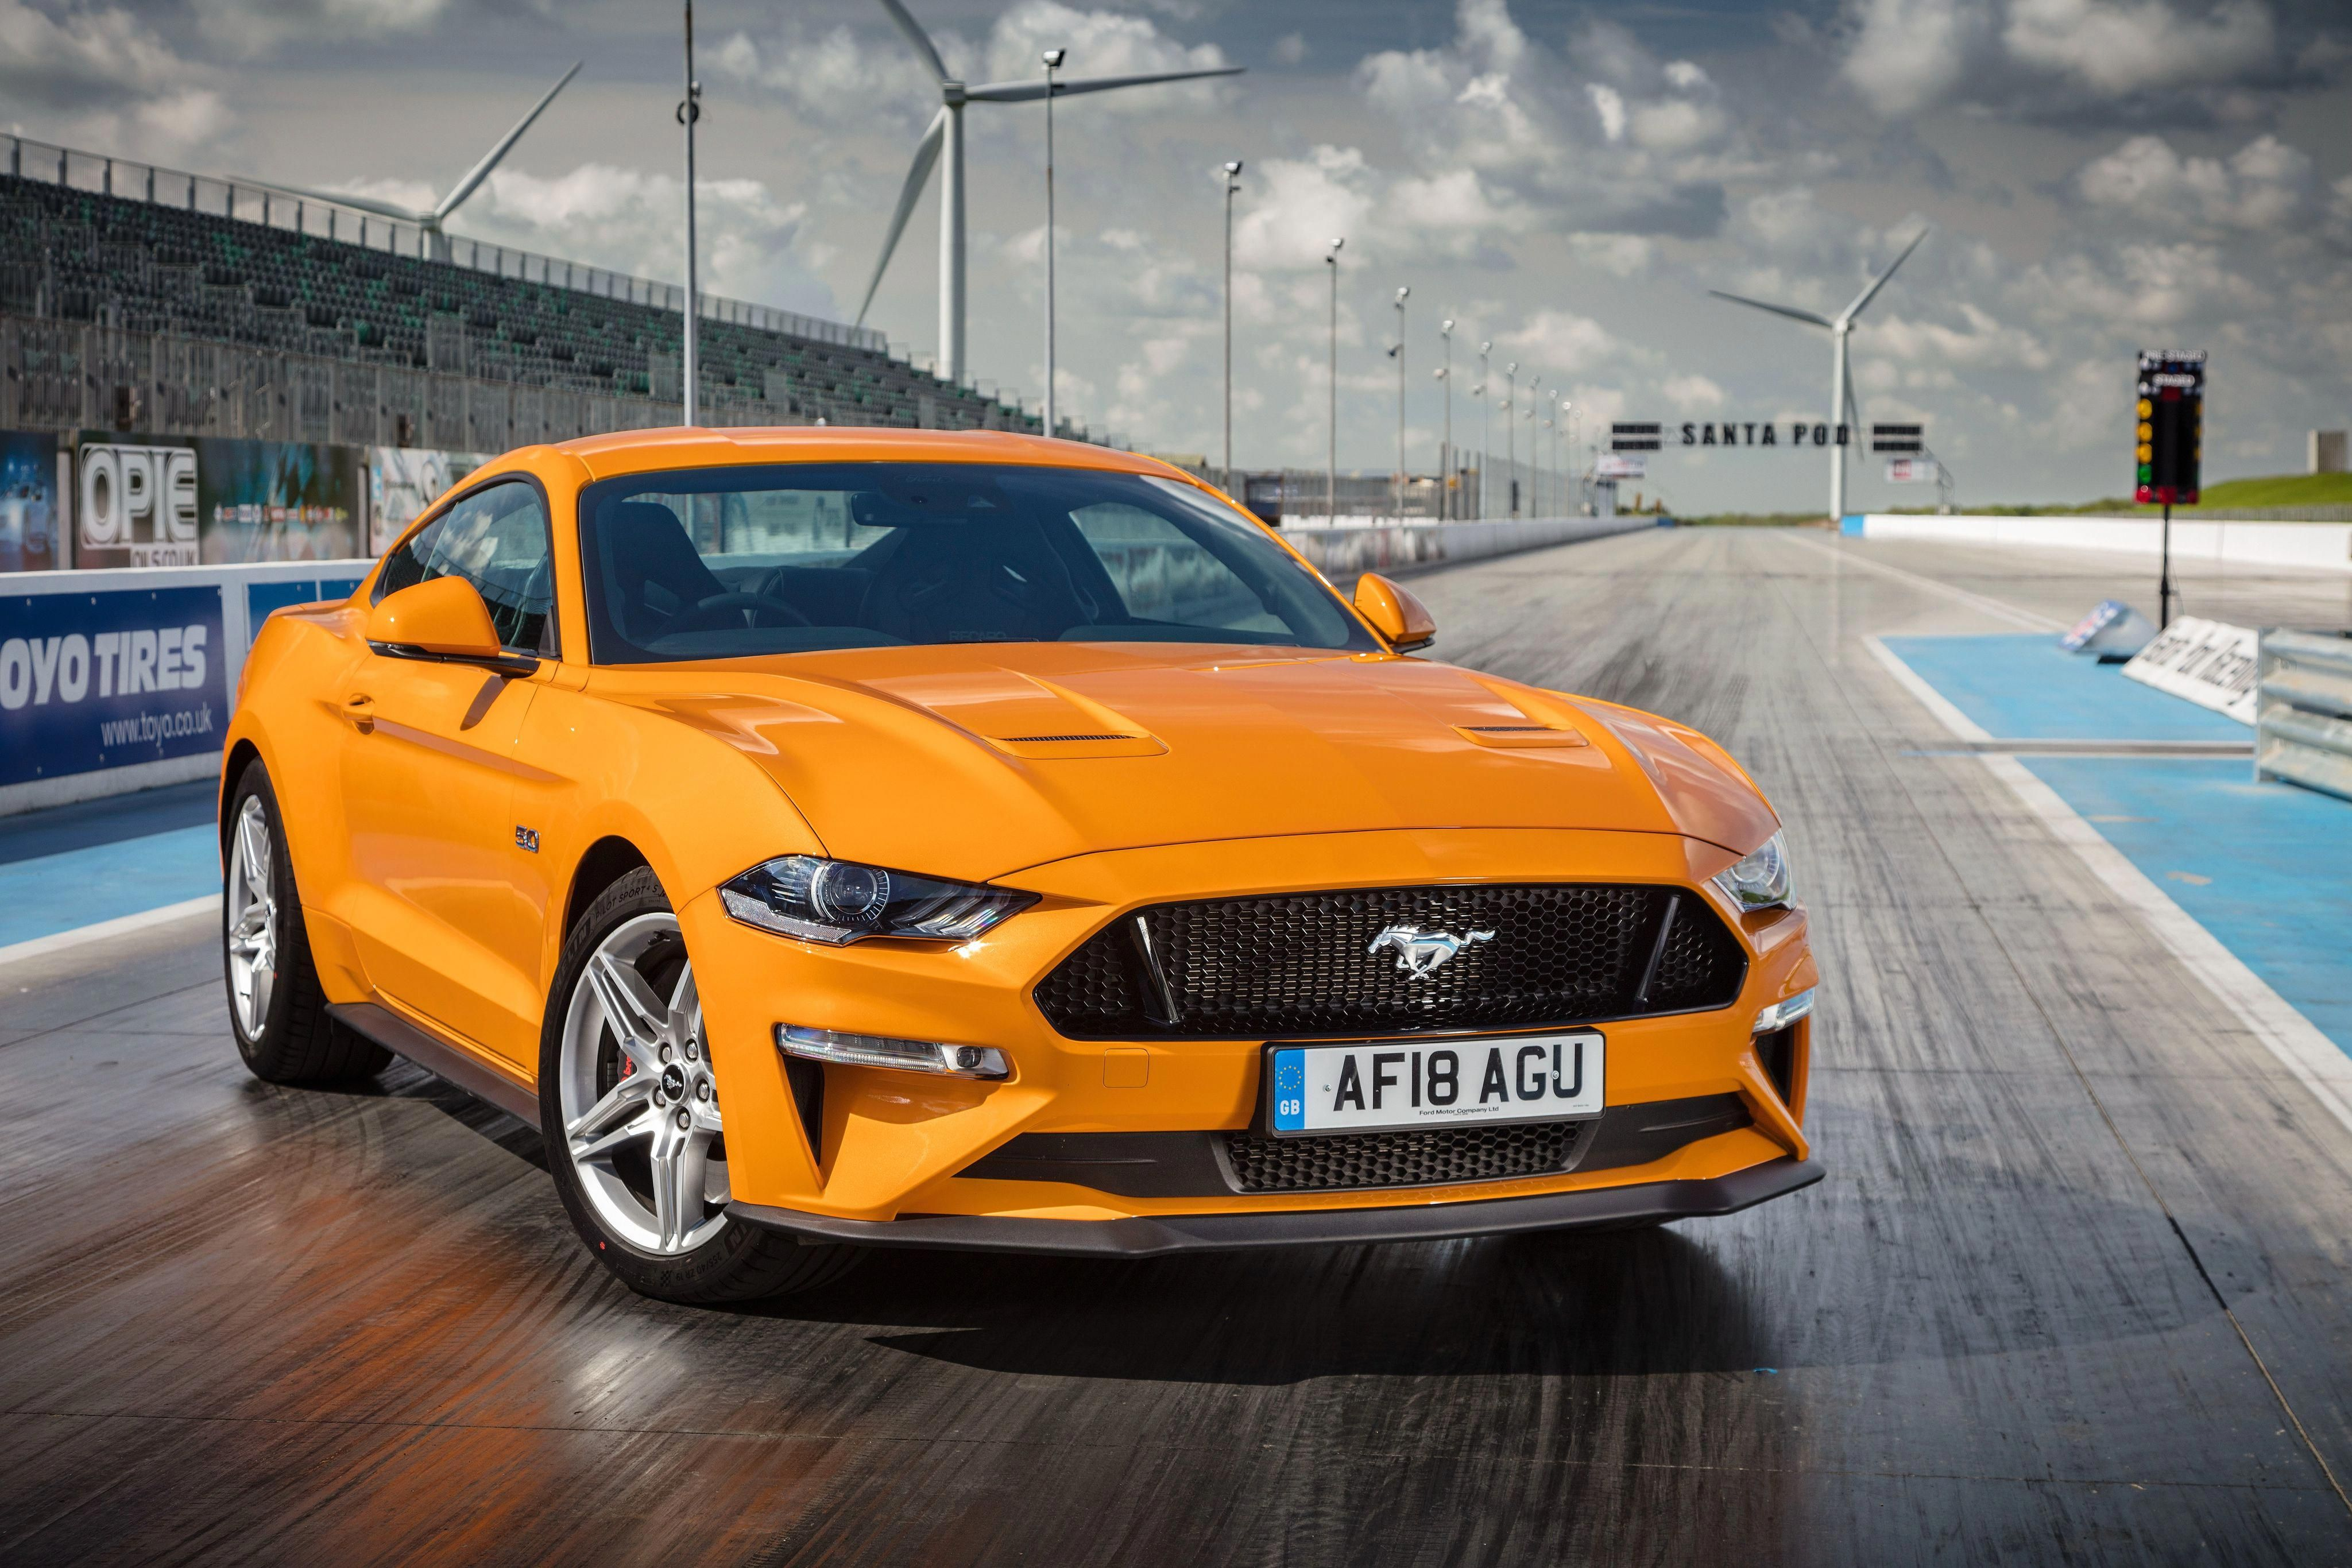 2018 Gt Fastback Americanmusclecarsford Ford Mustang Gt Yellow Mustang Mustang Gt